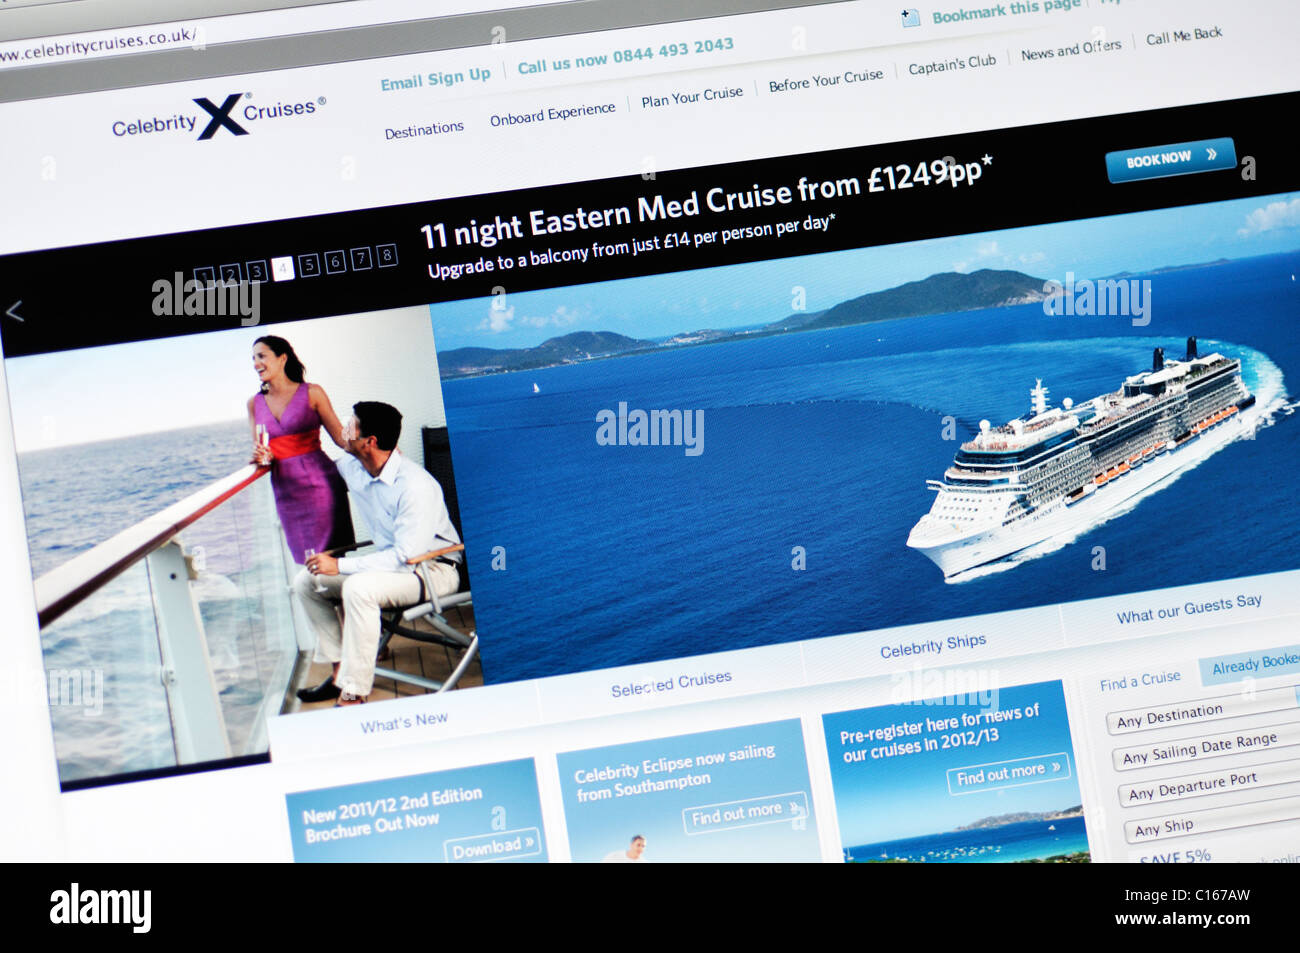 Celebrity cruise line website - Stock Image